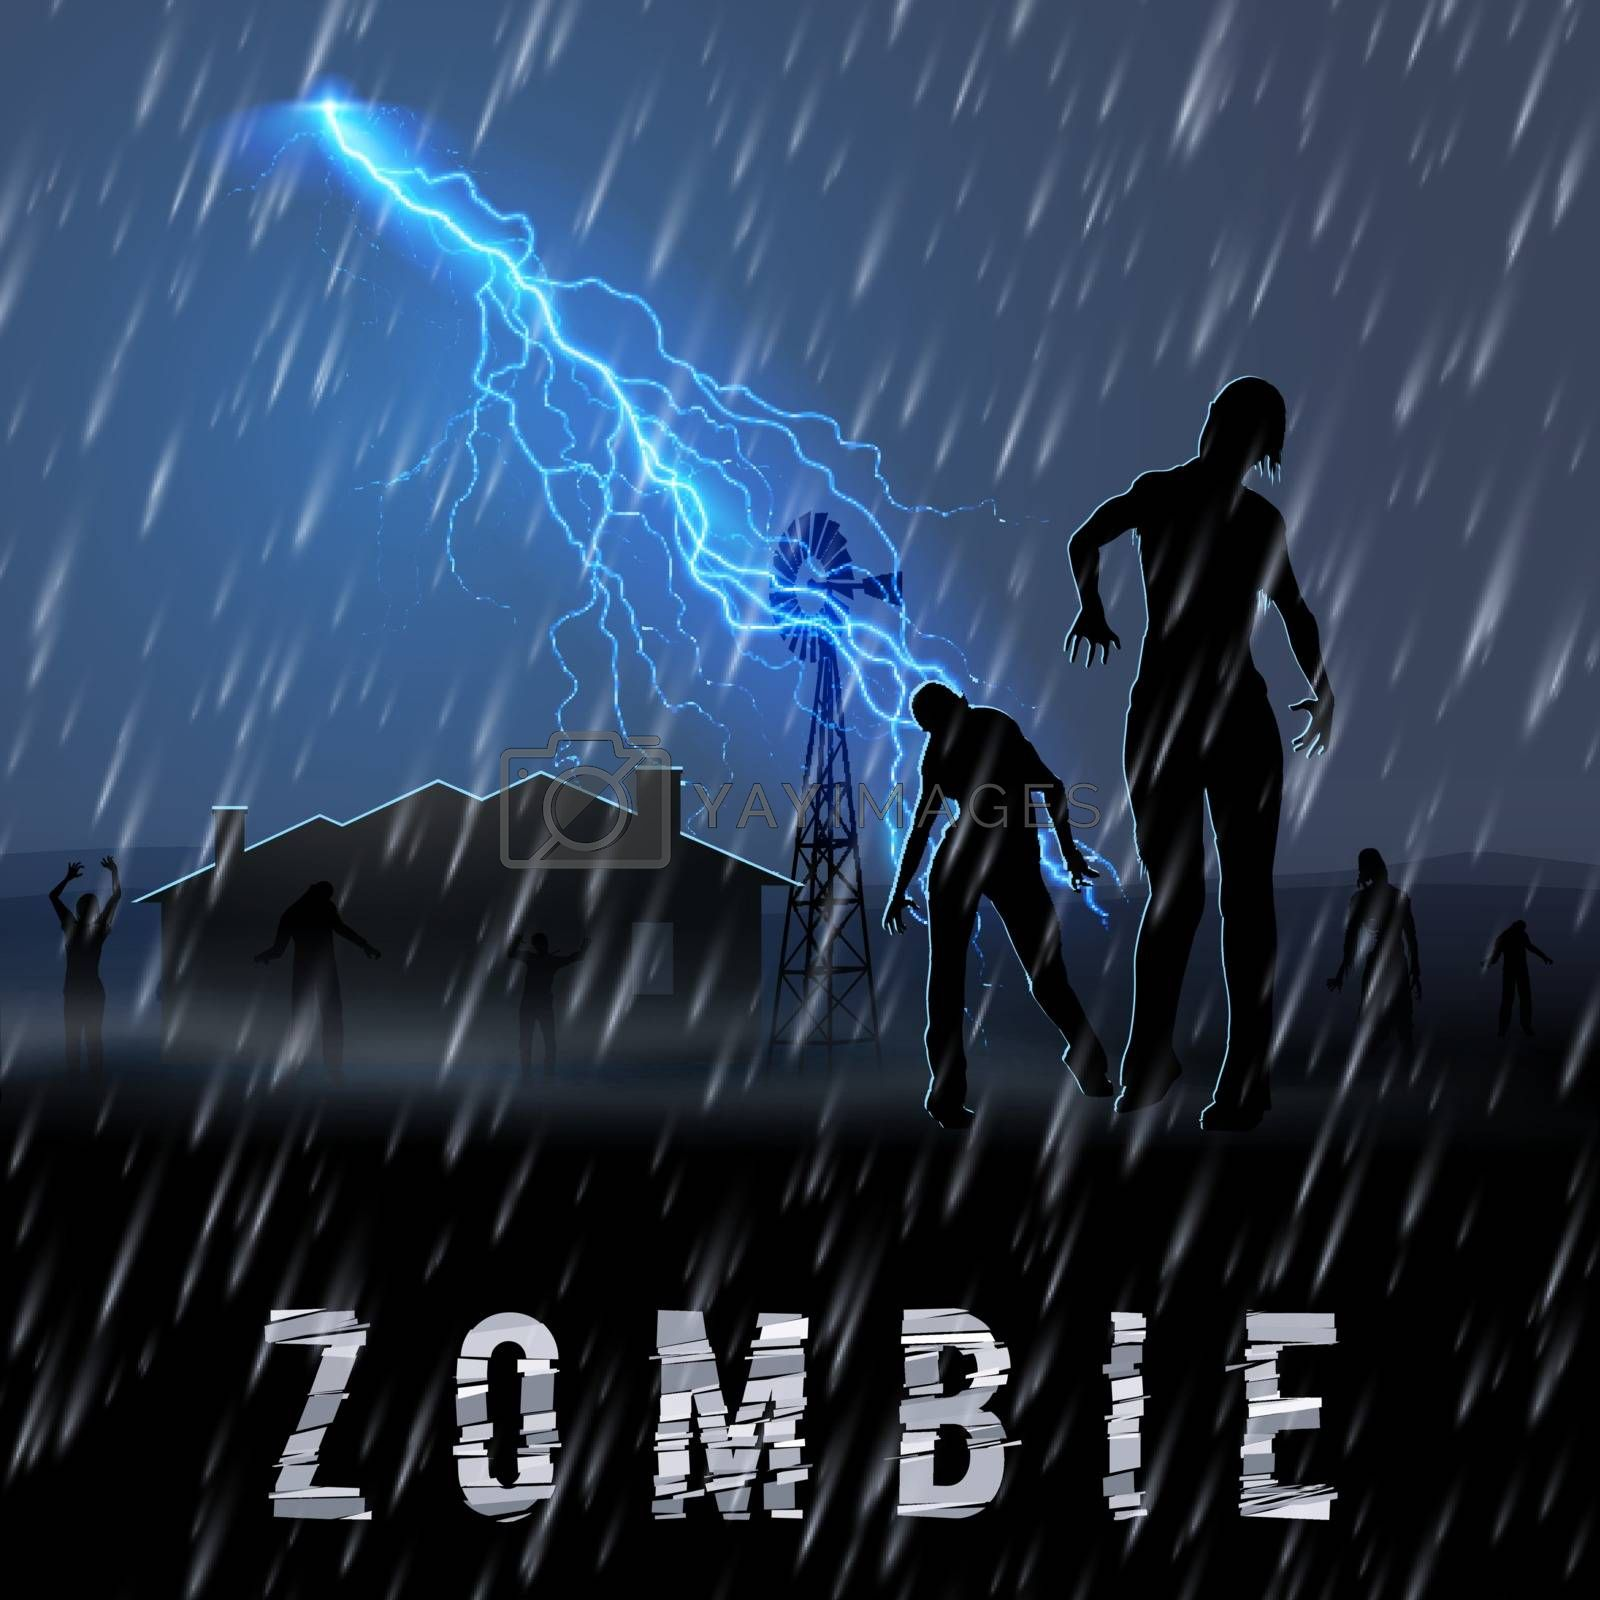 Zombie Walking out From Abandoned House at Night in a Rainy Weather